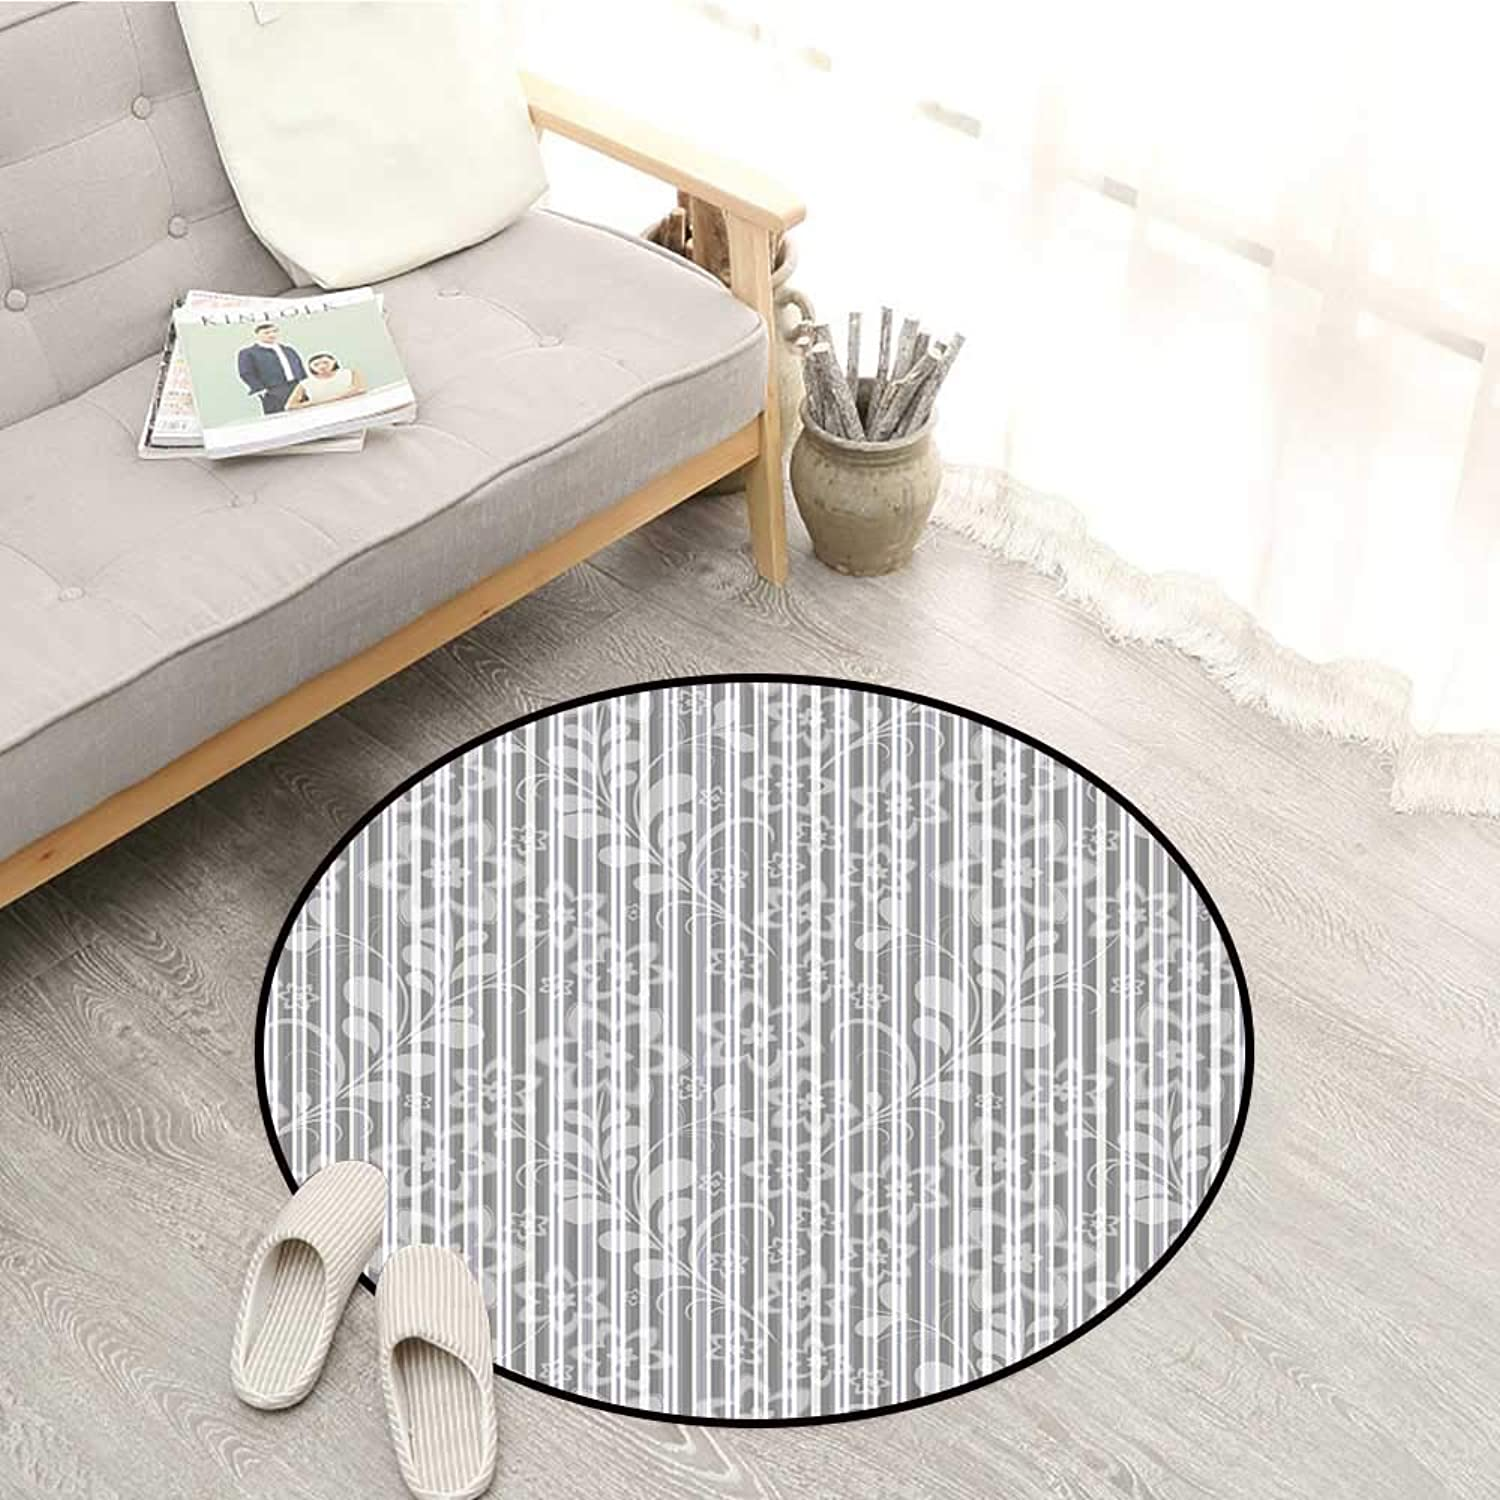 Grey and White Skid-Resistant Rugs Floral Elegance Petals Branches Leaves Faded Toned Abstract Blooms Artsy Pattern Sofa Coffee Table Mat 4'3  Grey